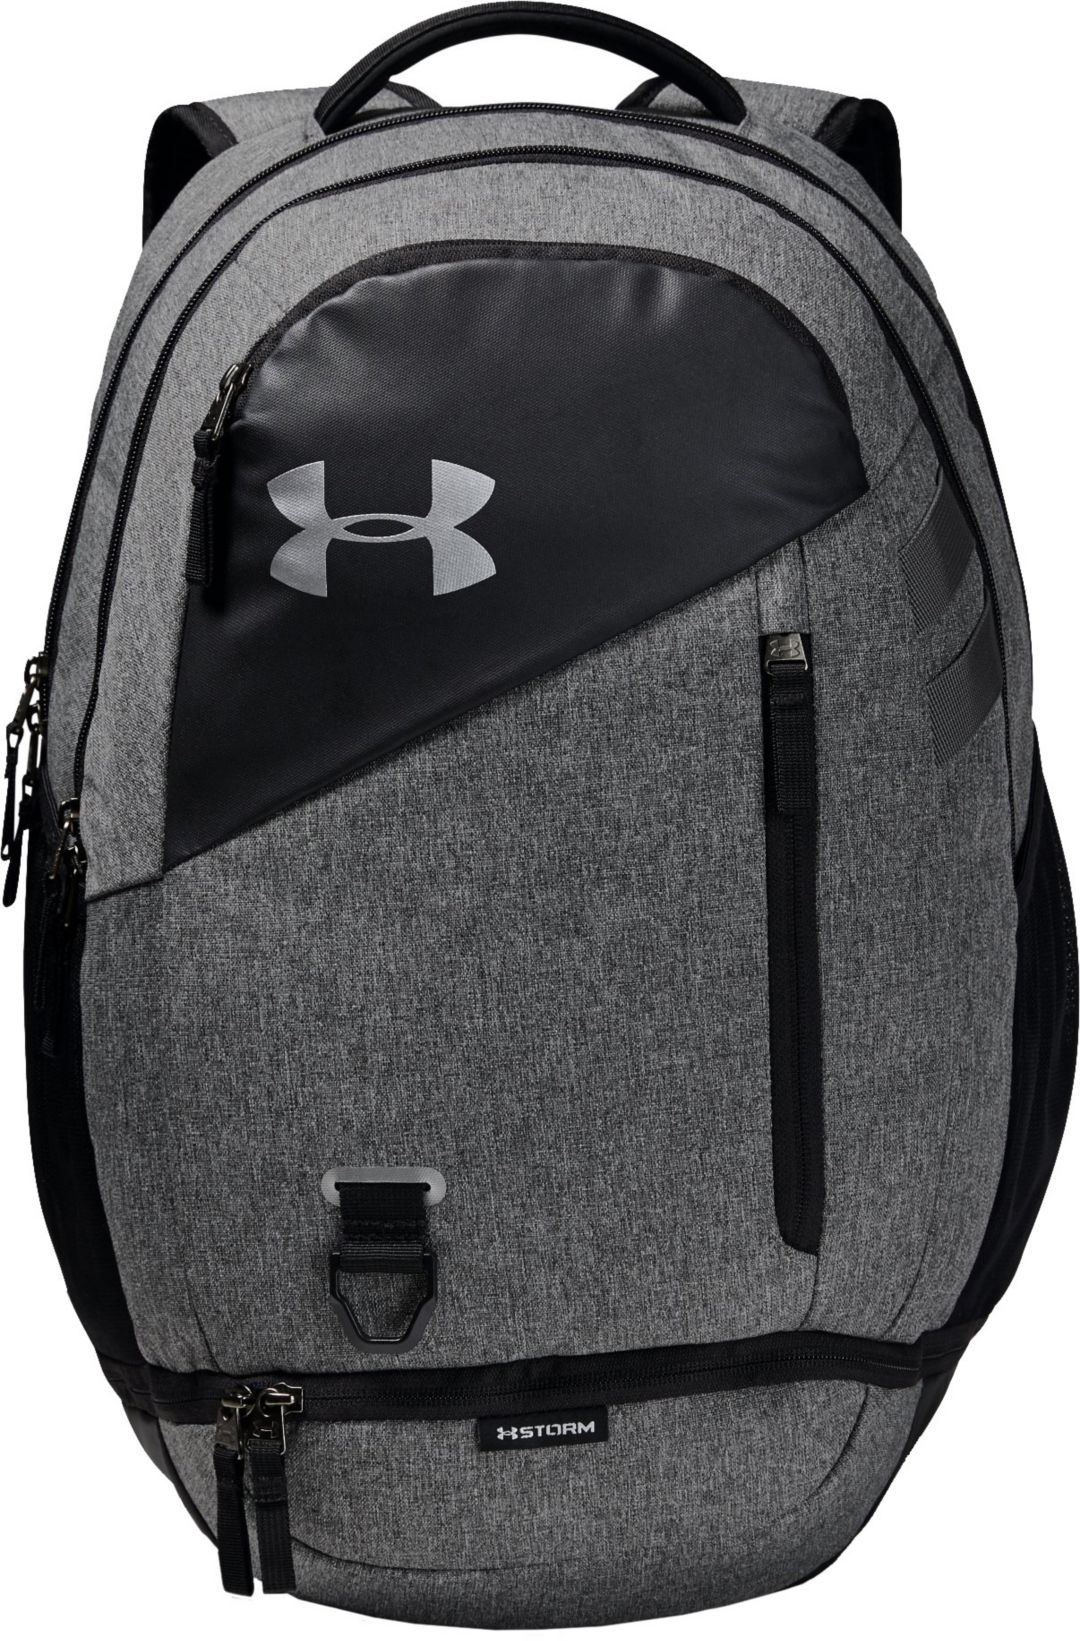 Under Armour Hustle 4 0 Backpack